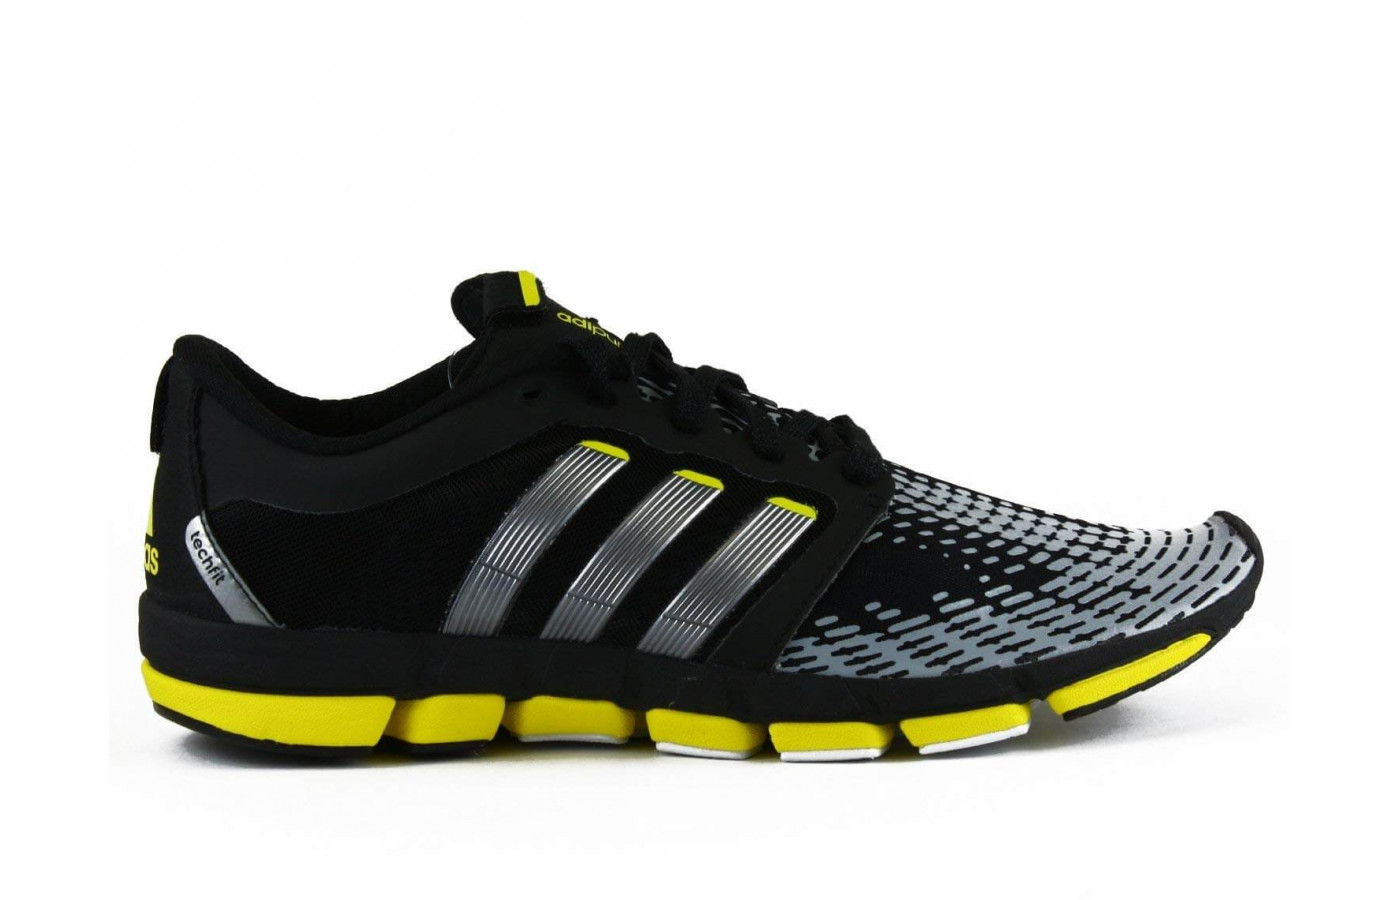 Adidas Adipure Motion Right